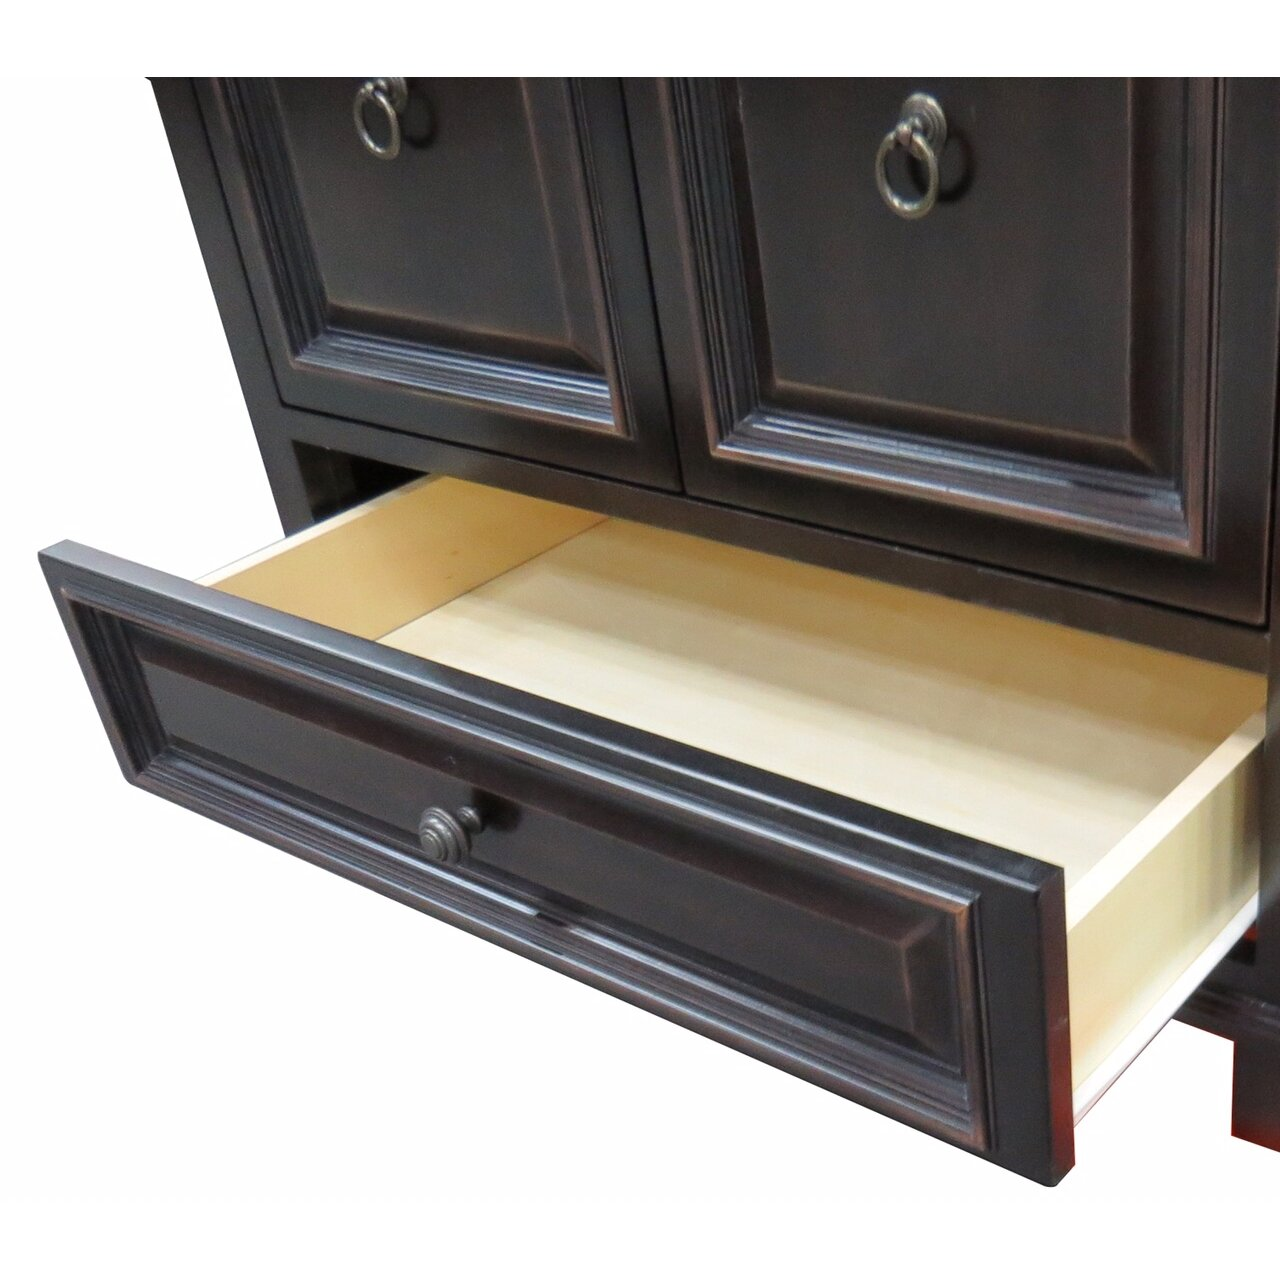 Custom Bathroom Vanities Tampa custom bathroom vanities jacksonville fl : brightpulse